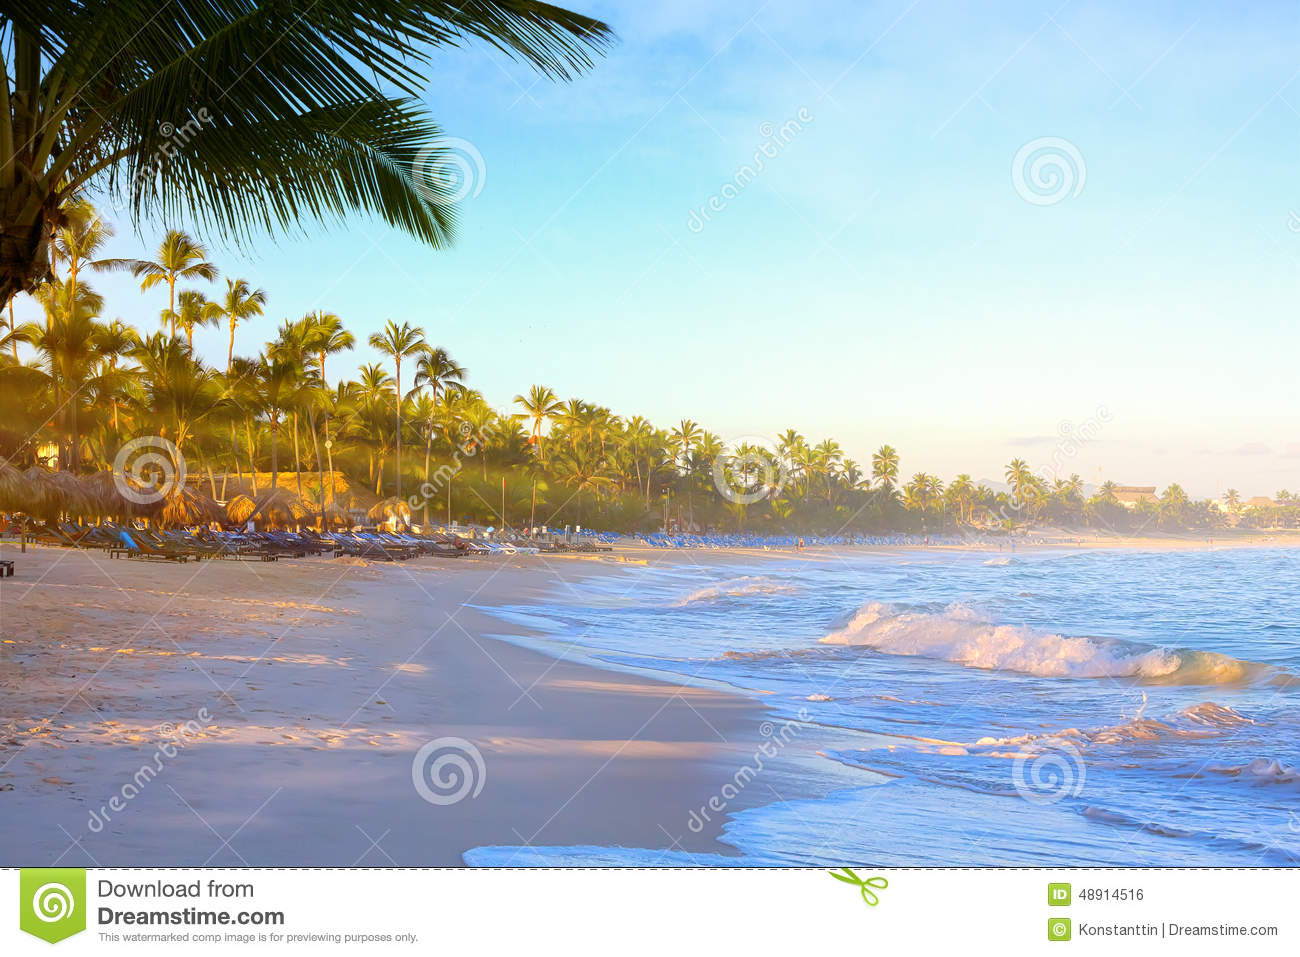 Travel destinations stock photo image 48914516 for Tropical vacation places in the us